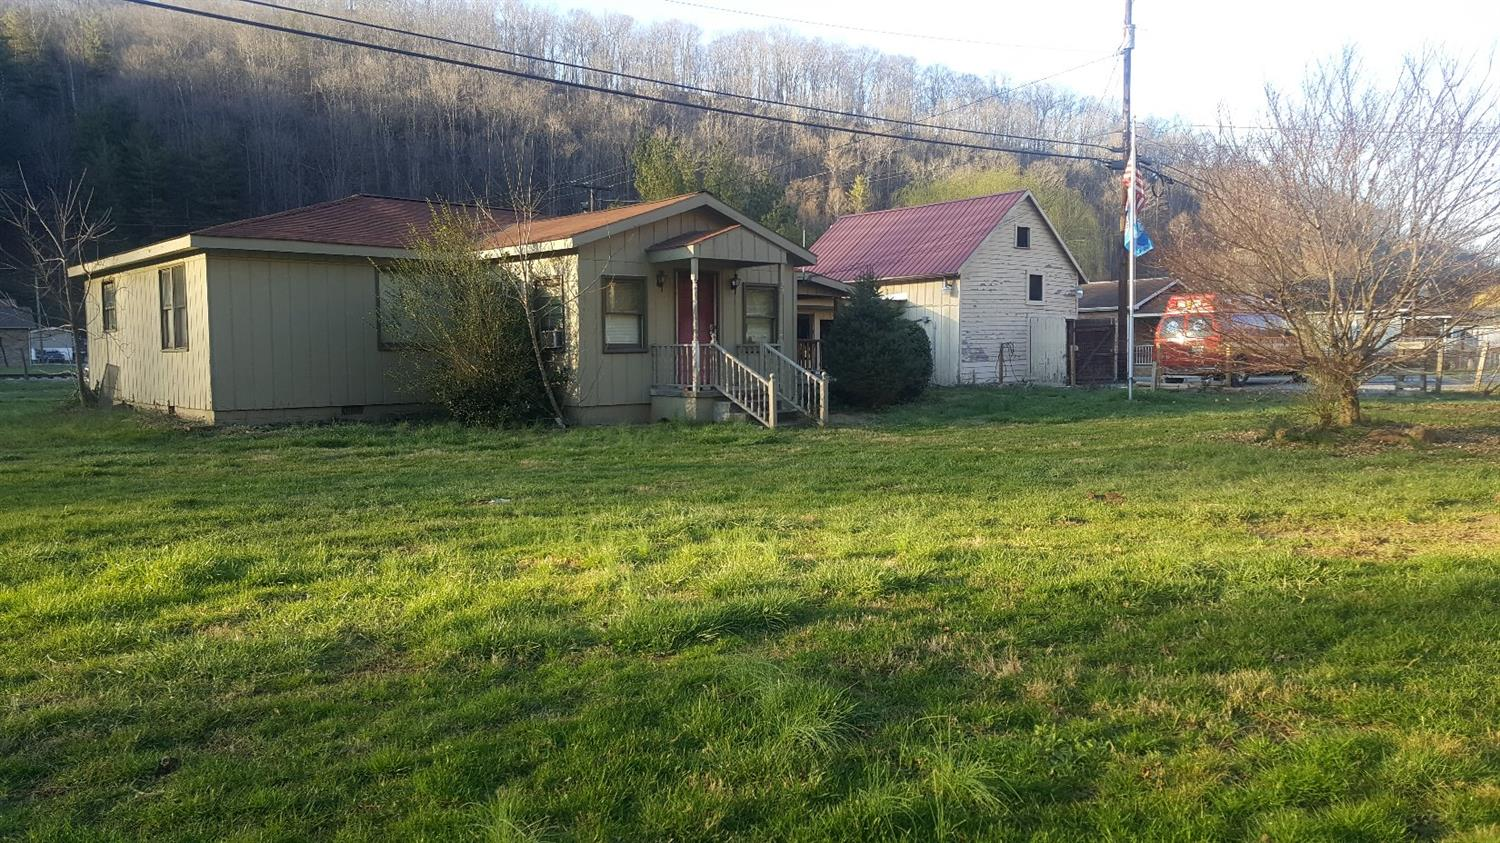 151 ANDERSON ST, HARLAN, KY 40831